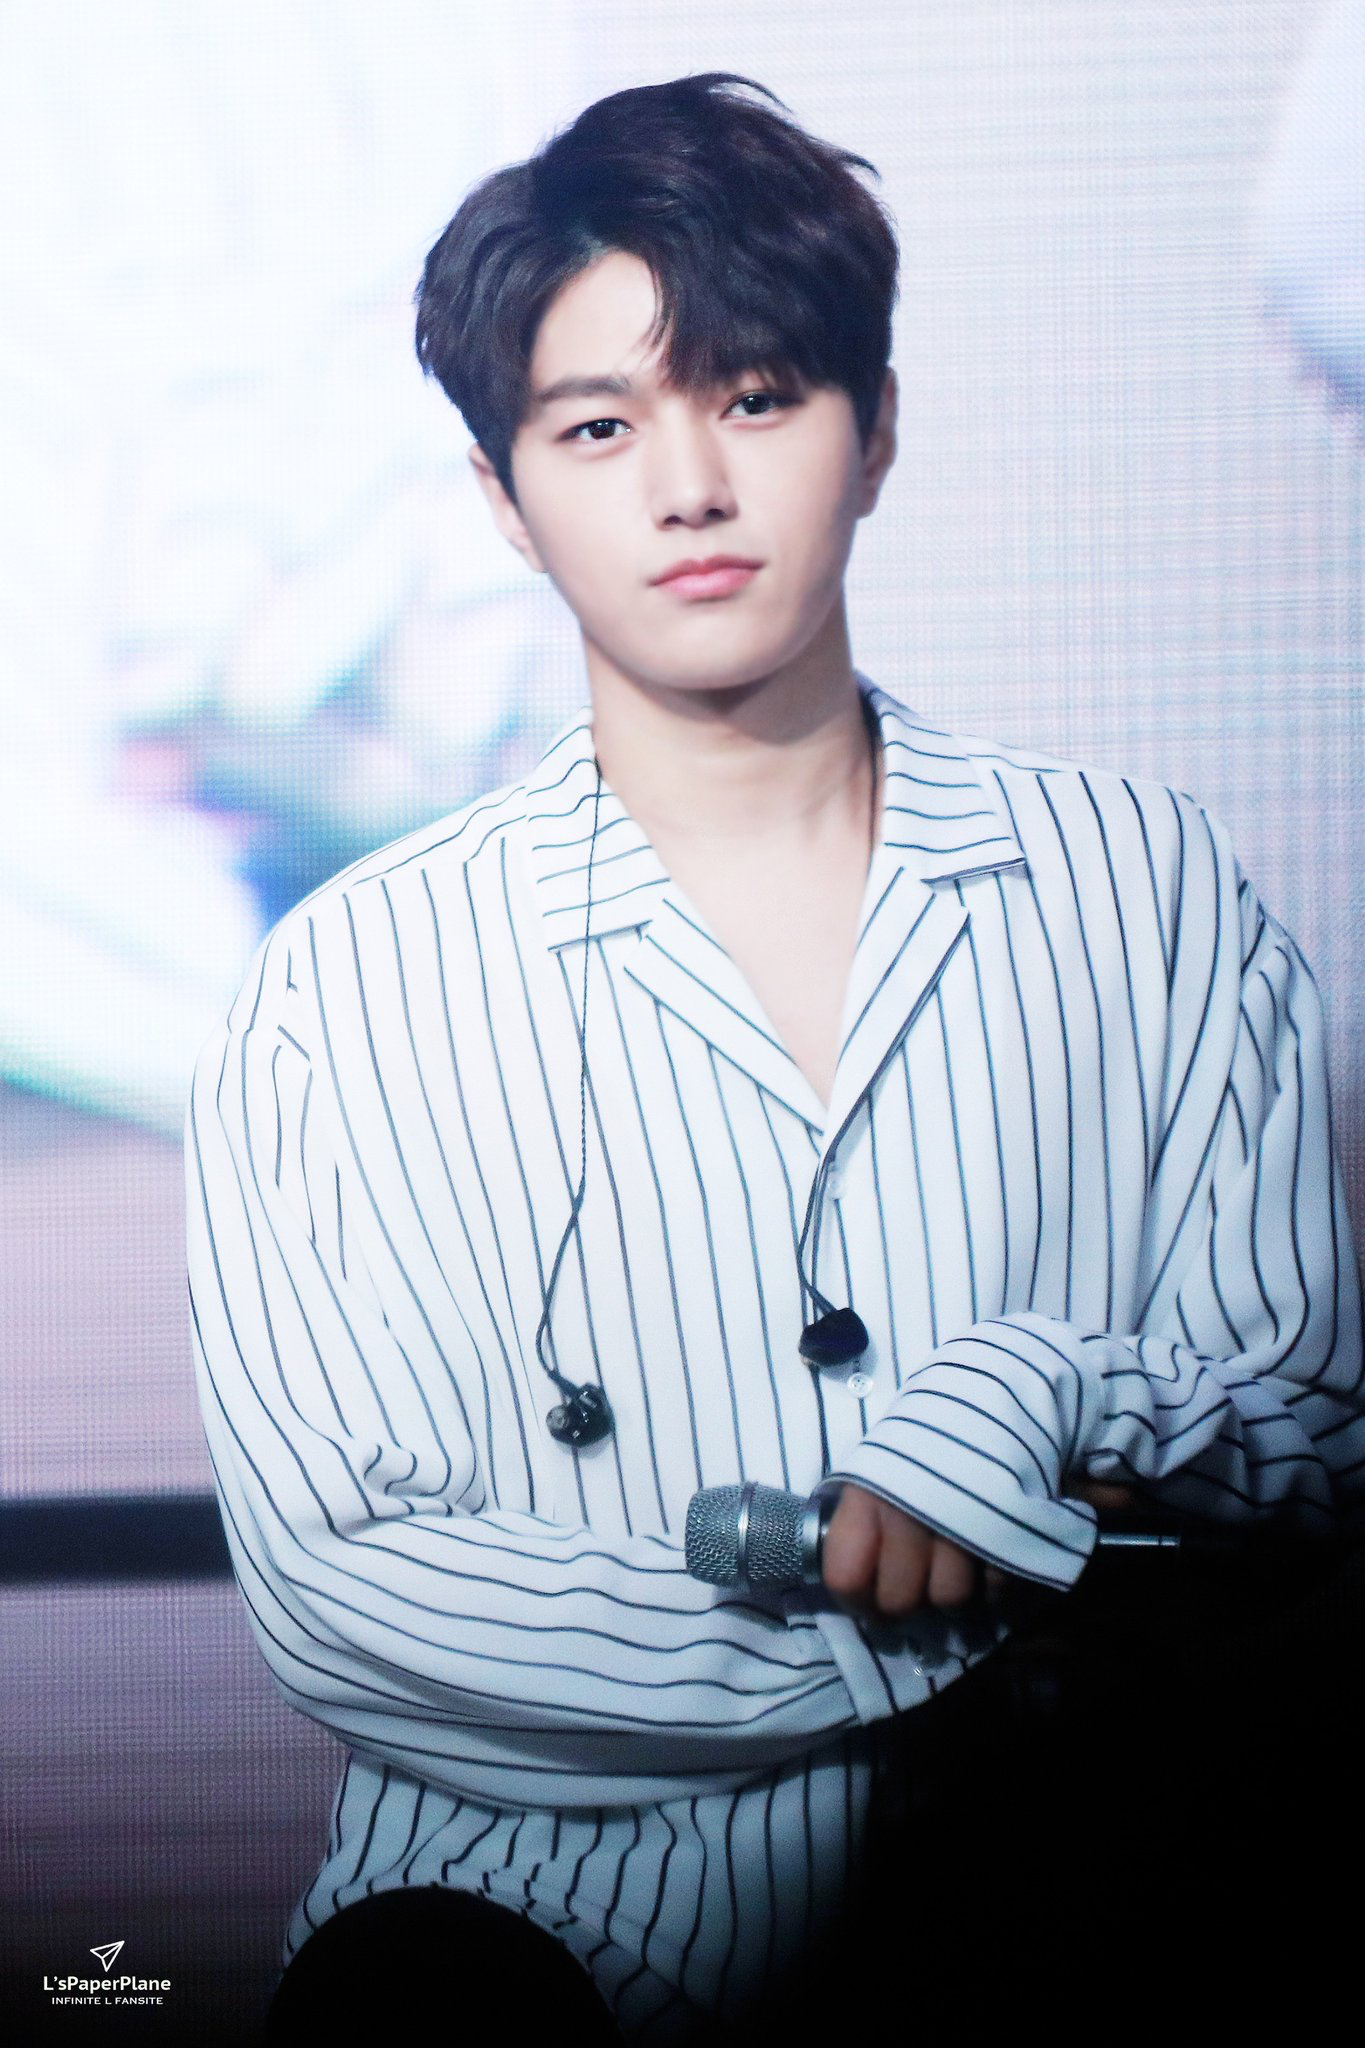 Pin by Sukhui W on Infinite in 2019 | Myungsoo, Kim sung ...